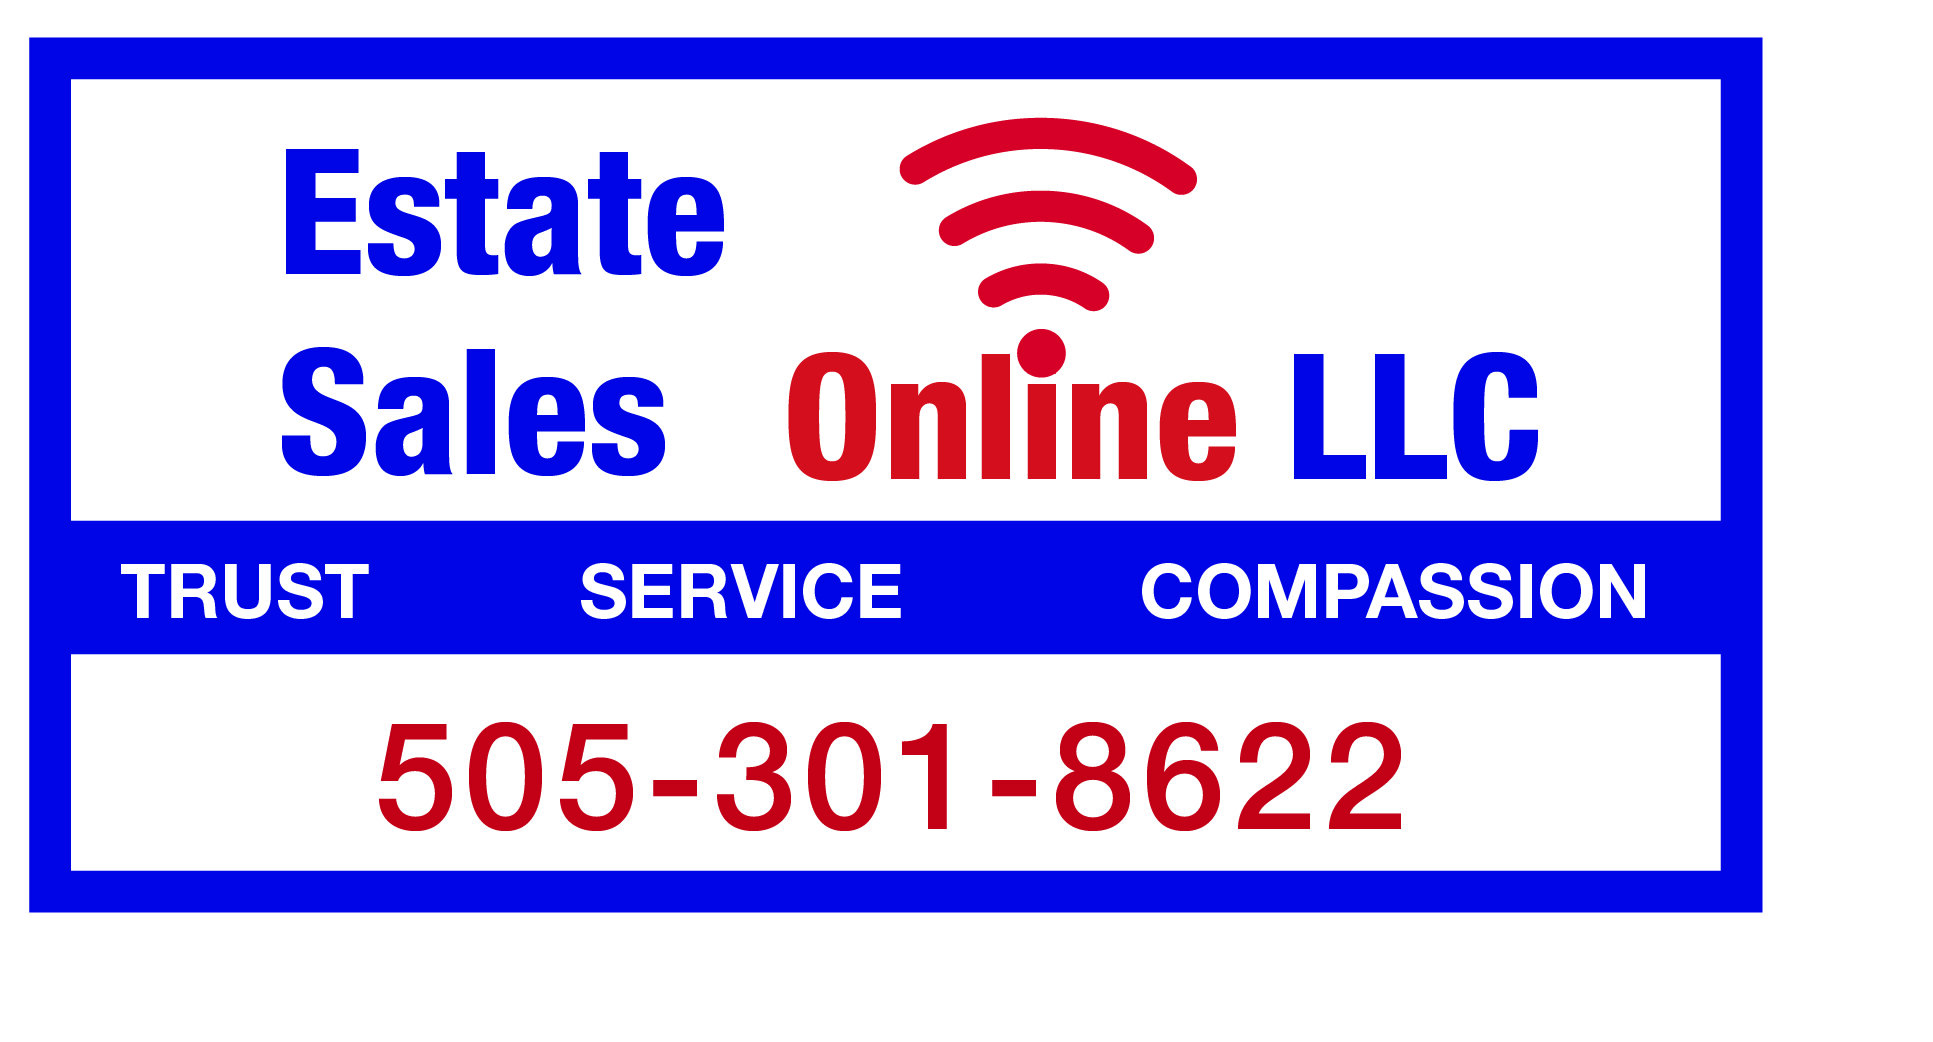 Estate Sales Online LLC Logo NM 190812b.jpg